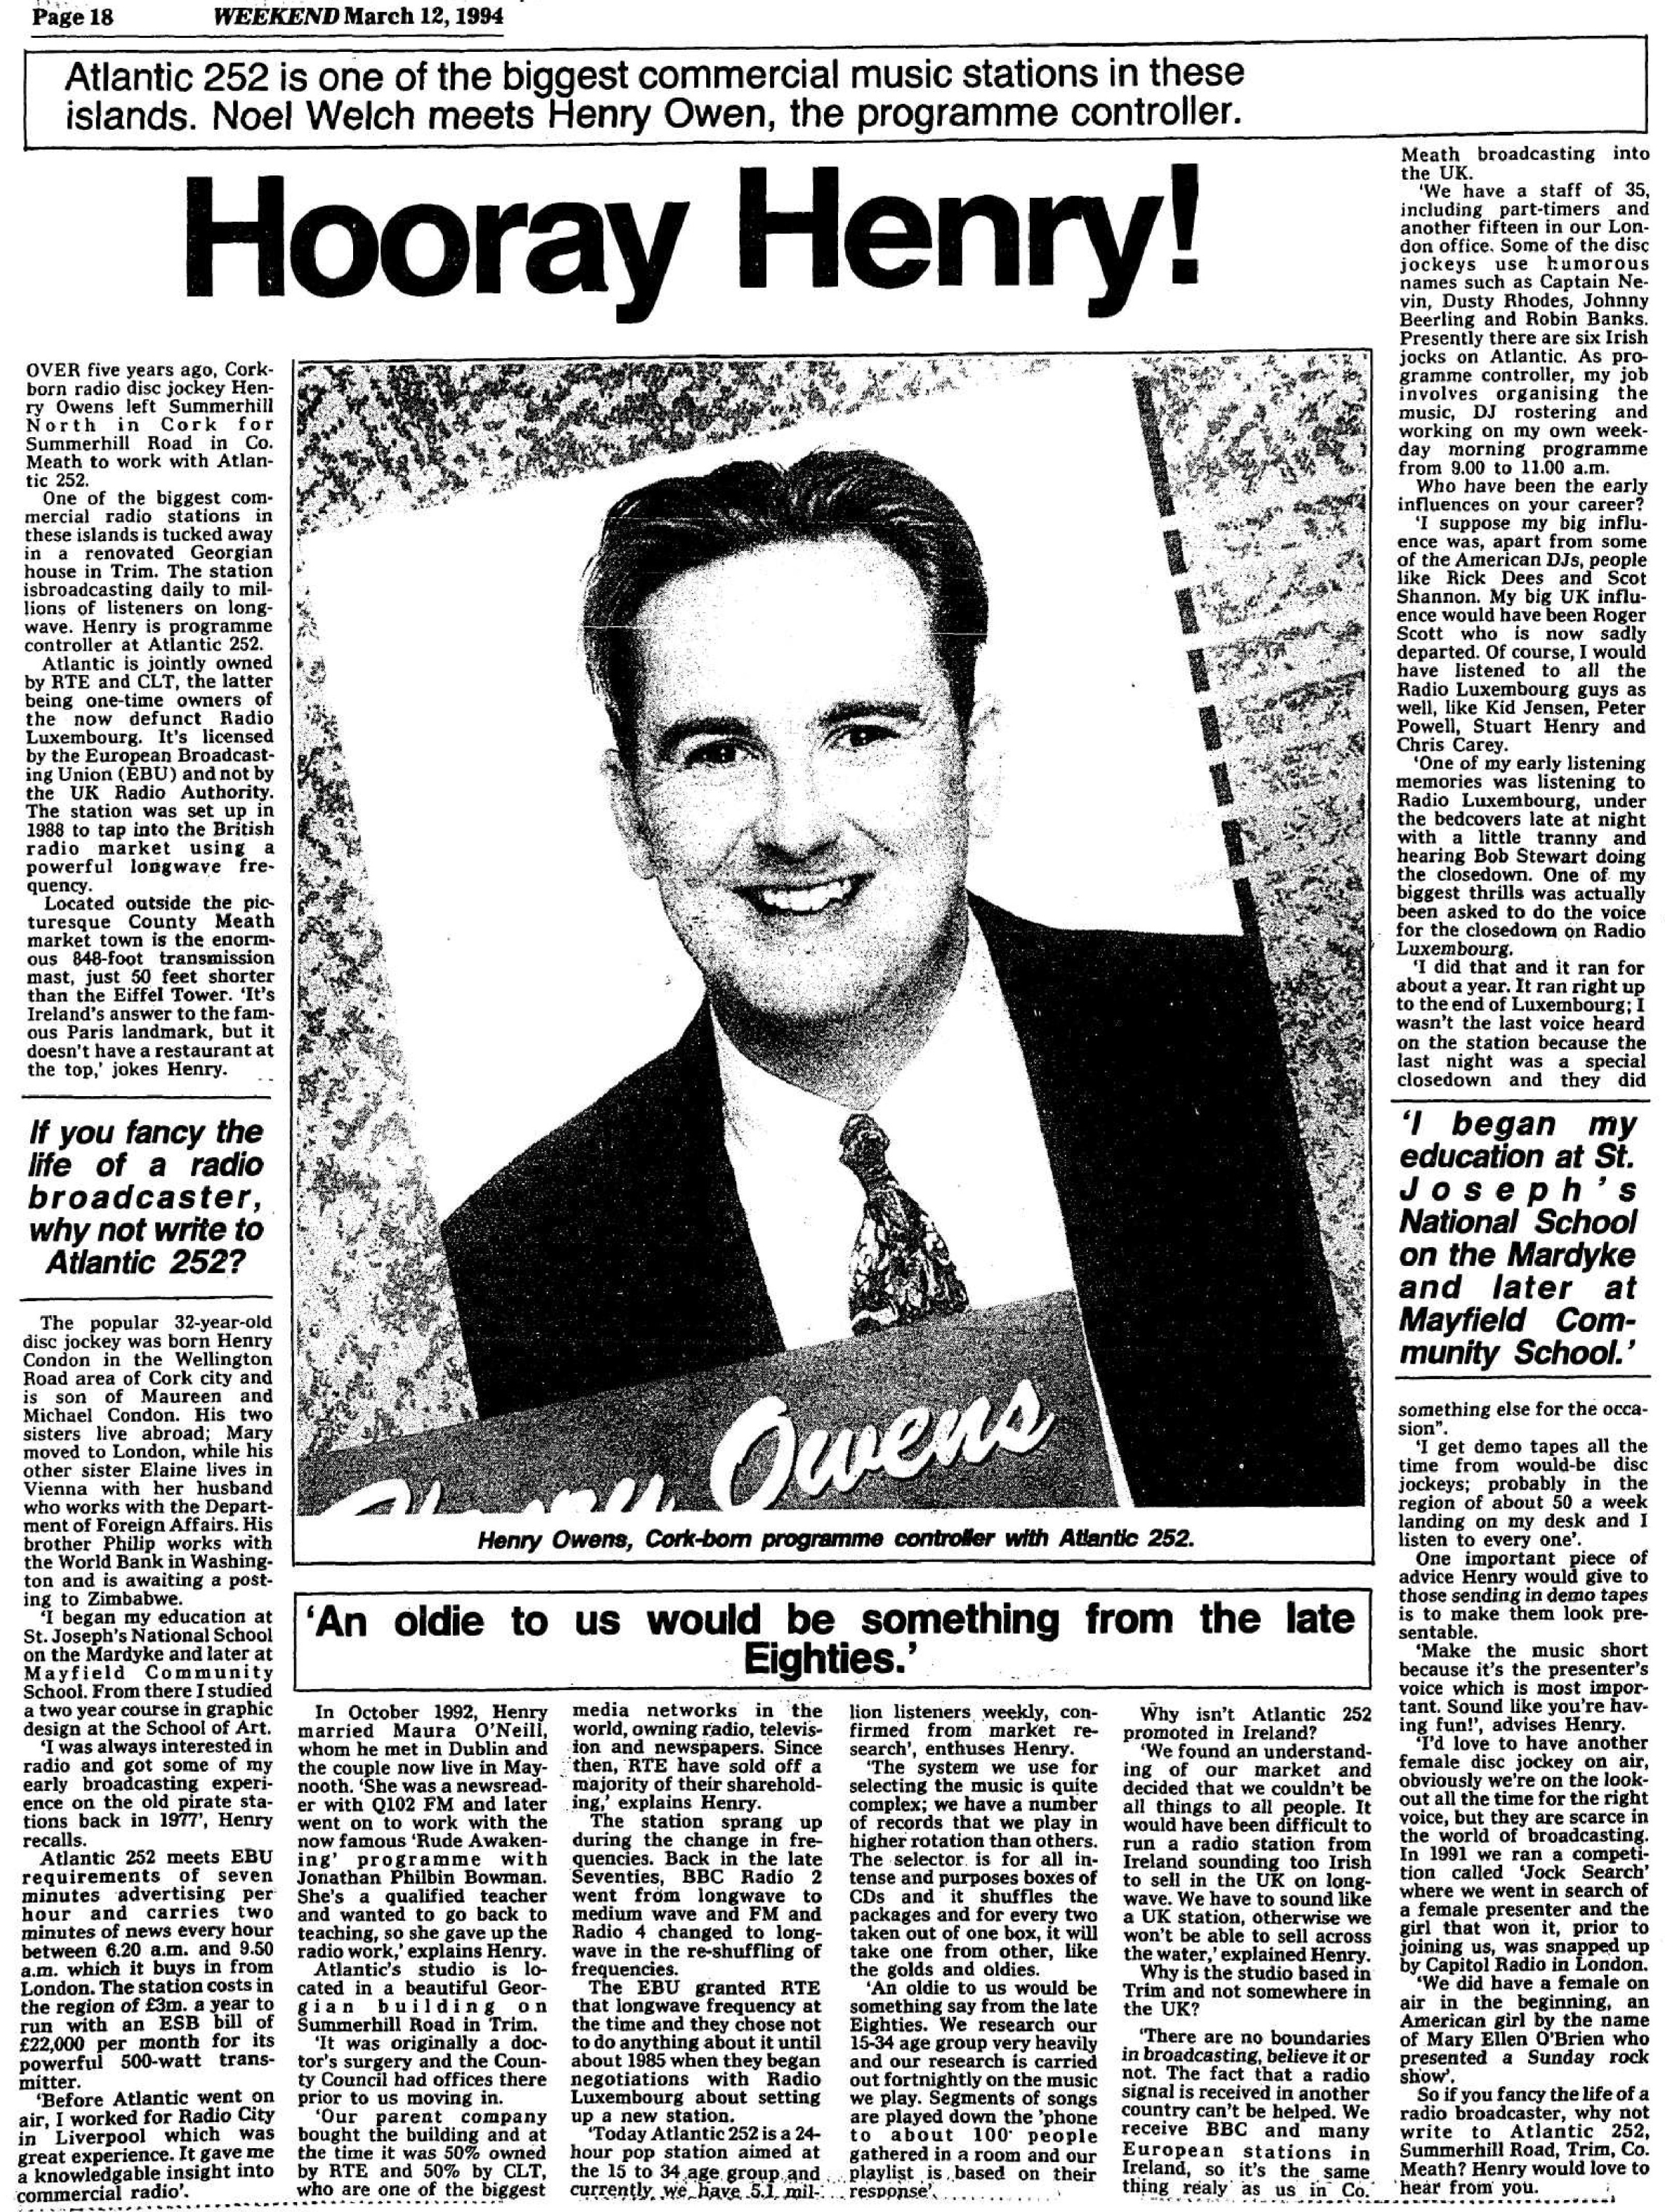 Hooray Henry! was a headline from The Irish Examiner dated March 12th 1994.